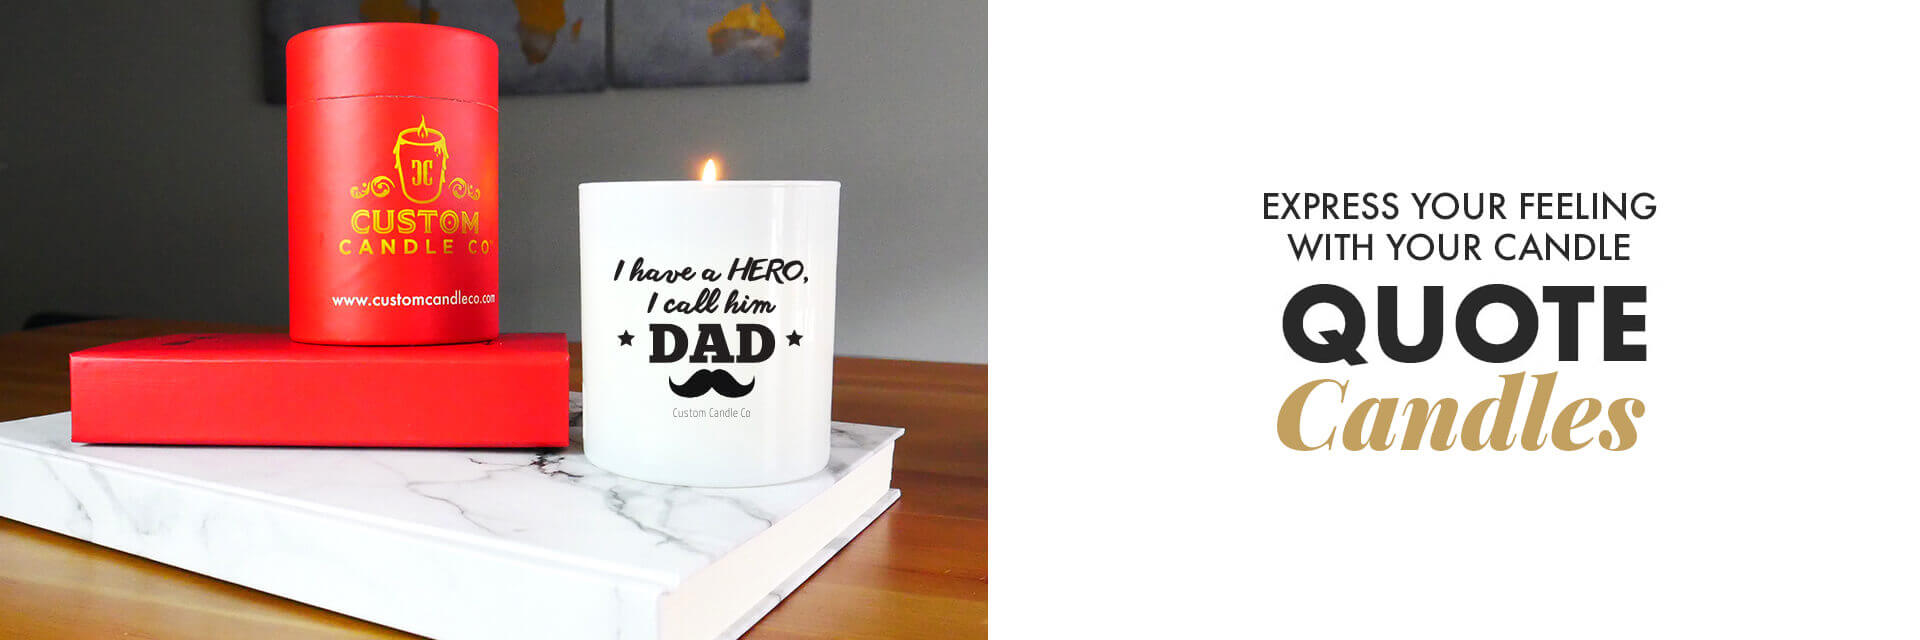 quote-candles-banner-